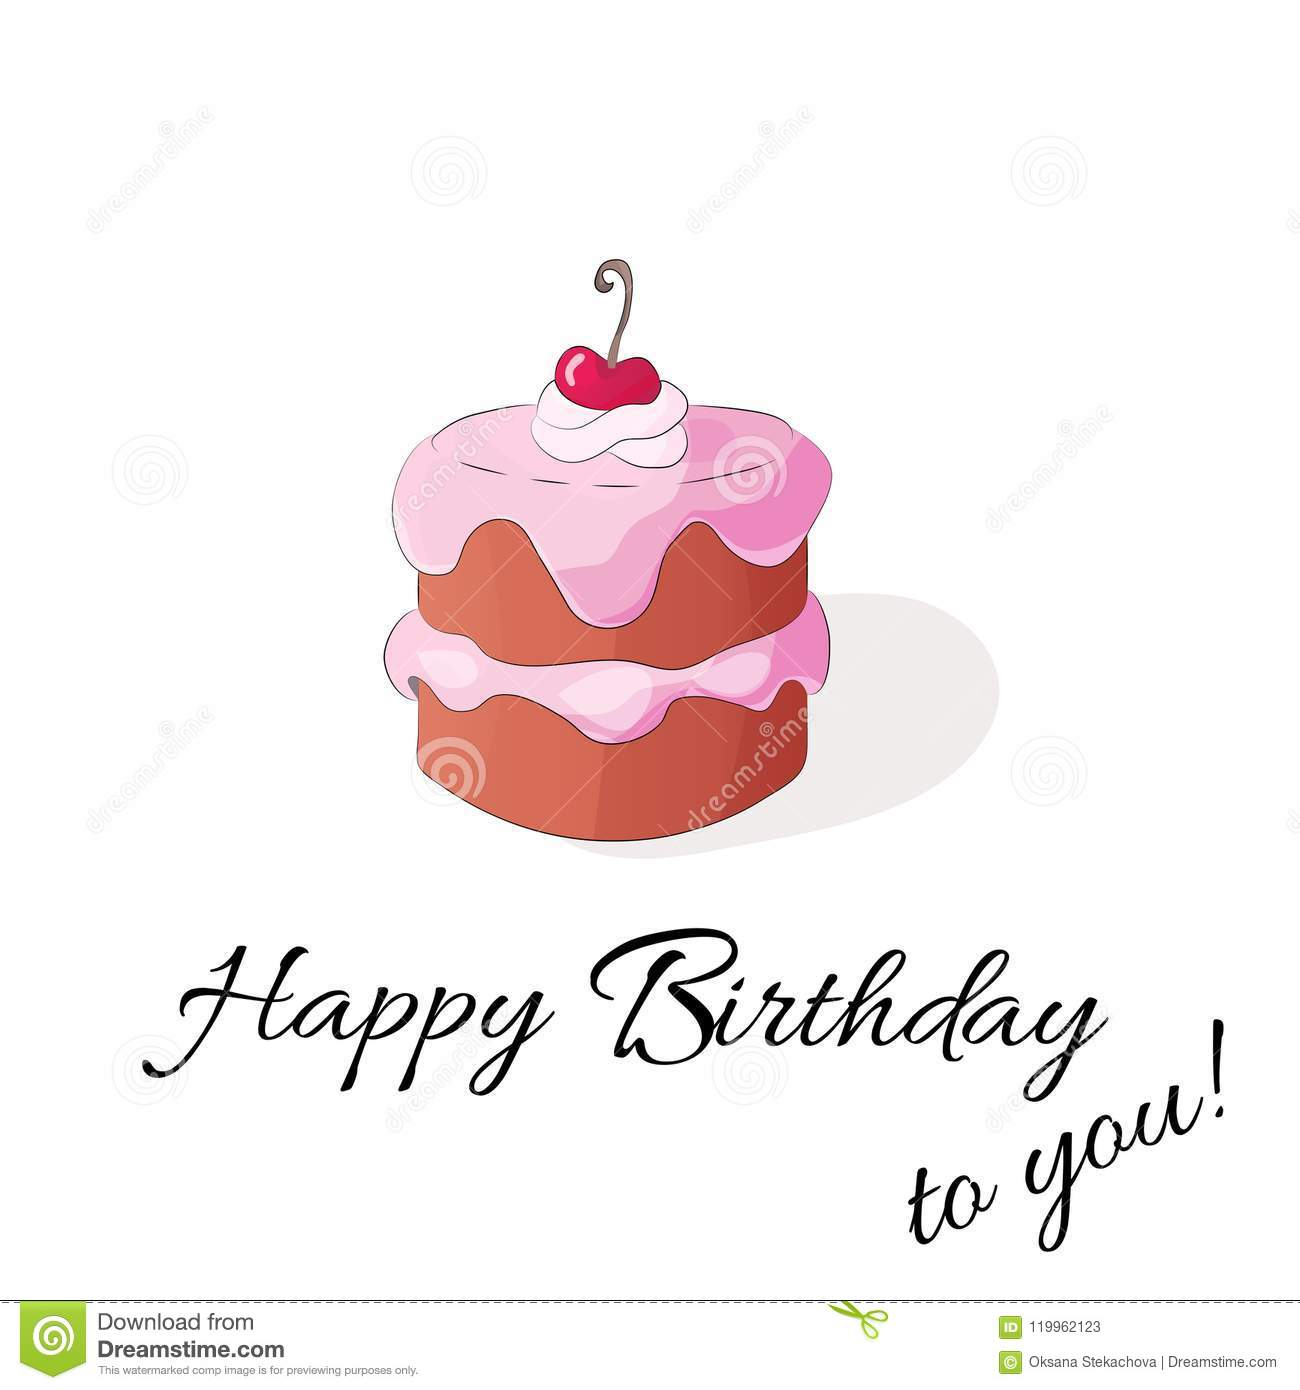 Happy Birthday To You Vector Isolated Illustration With Cake On